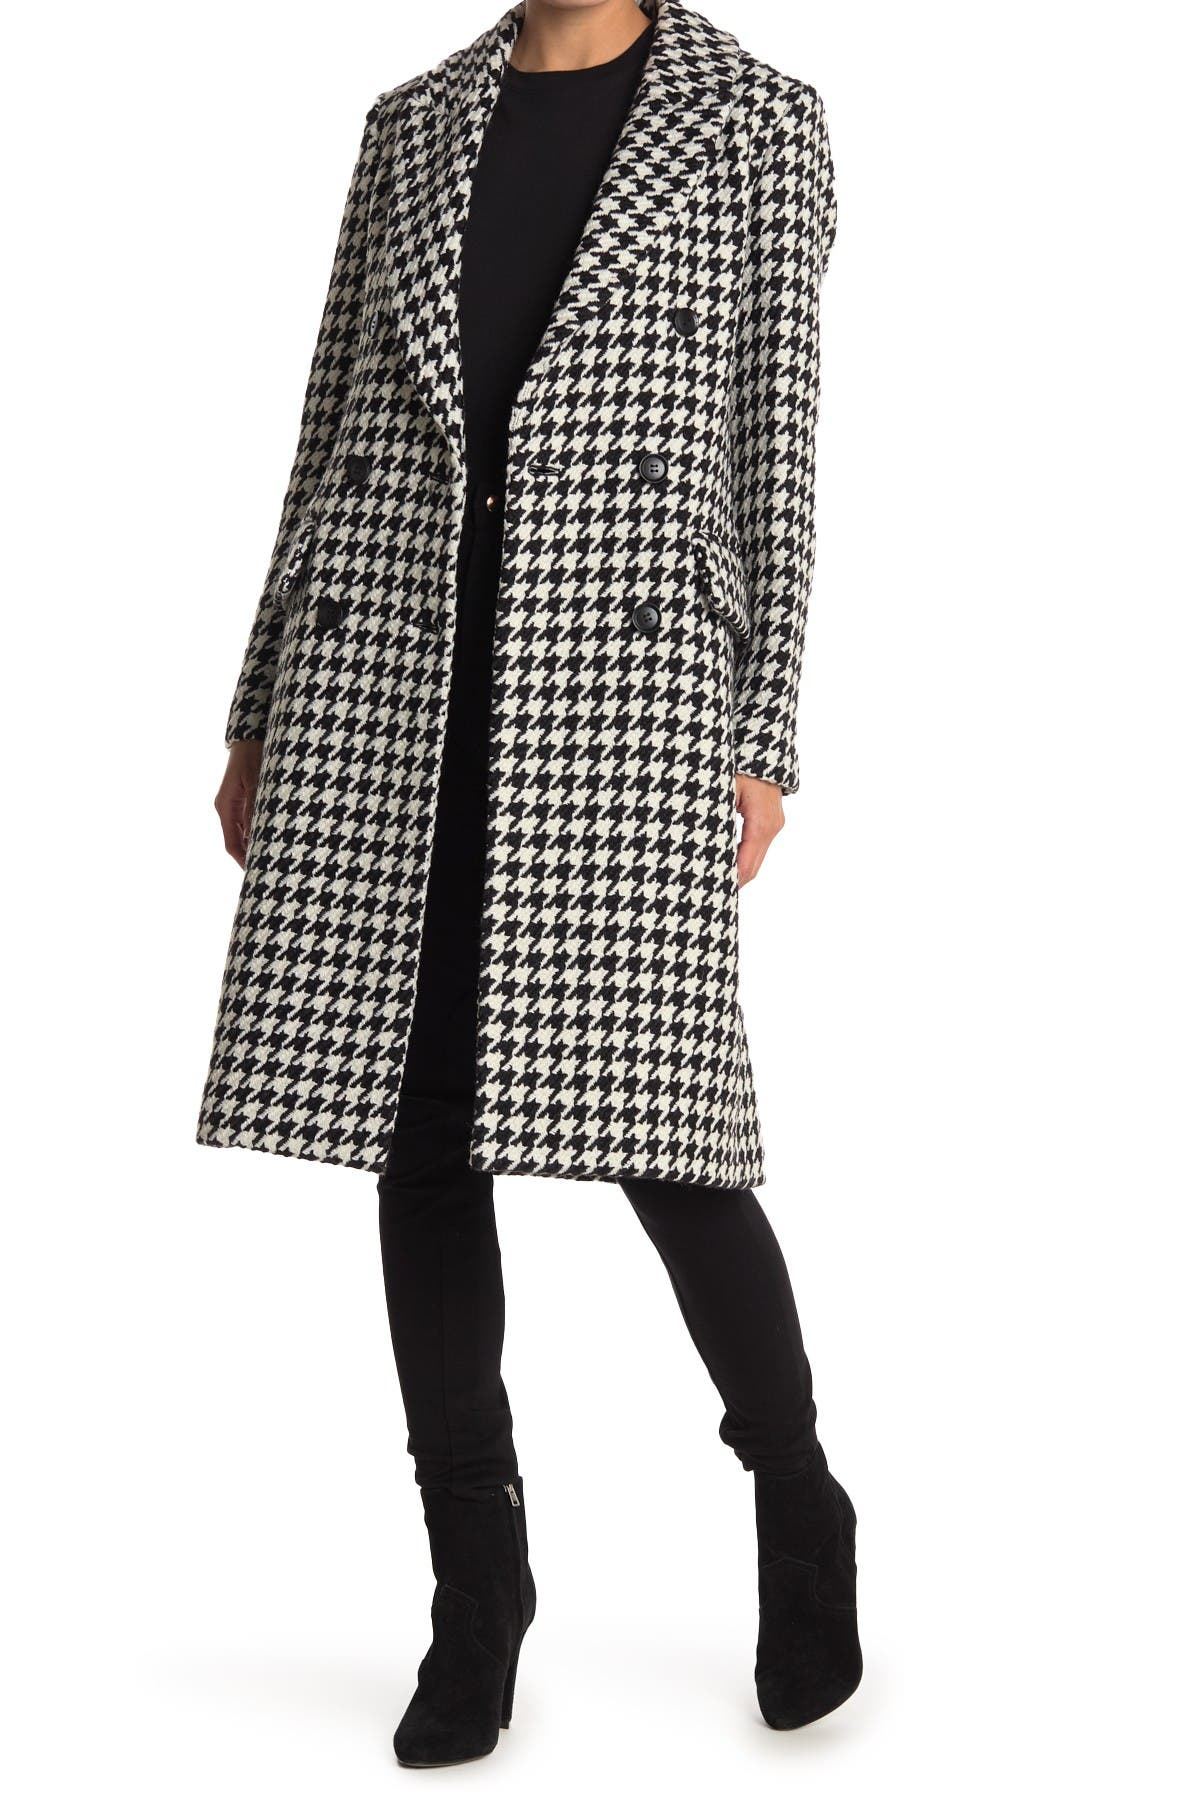 Image of BCBGMAXAZRIA Houndstooth Double Breasted Wool Blend Coat